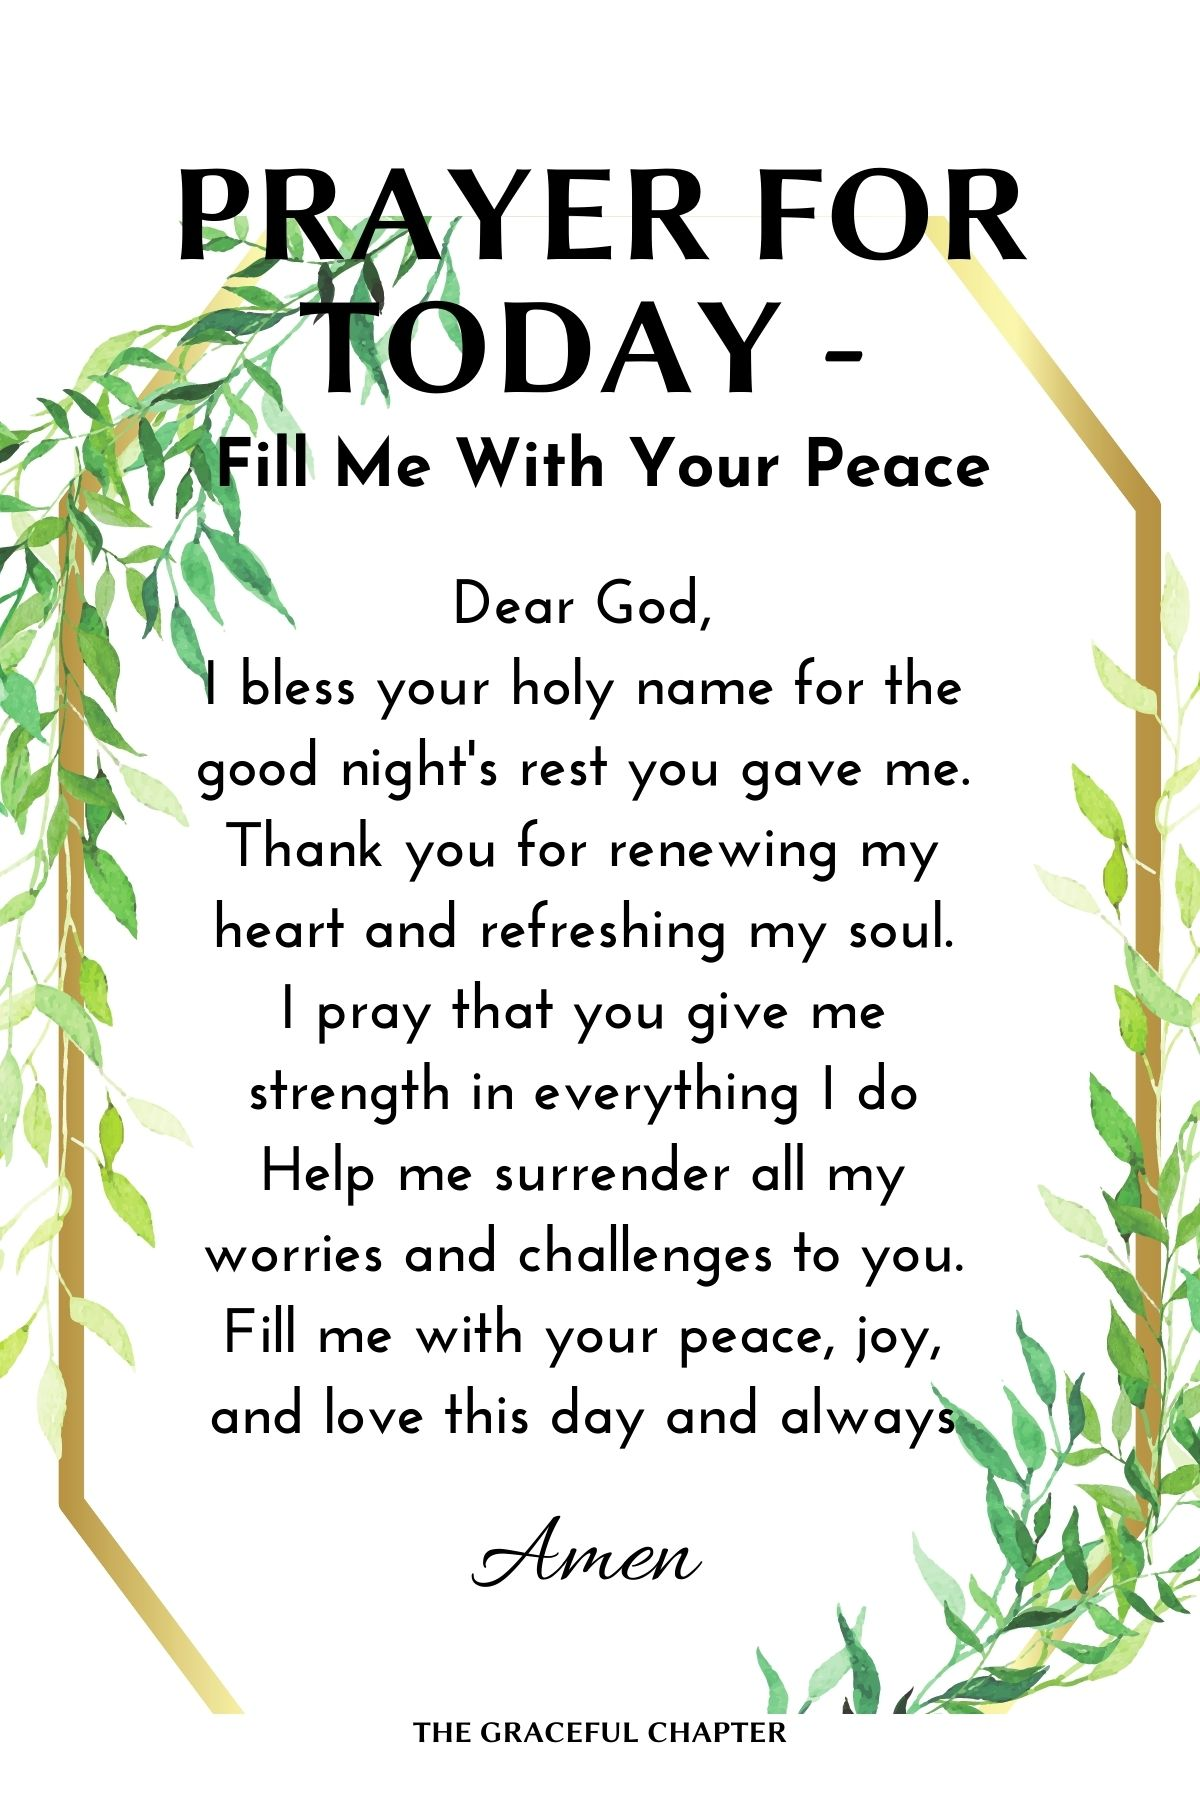 Prayer for today - Fill me with your peace